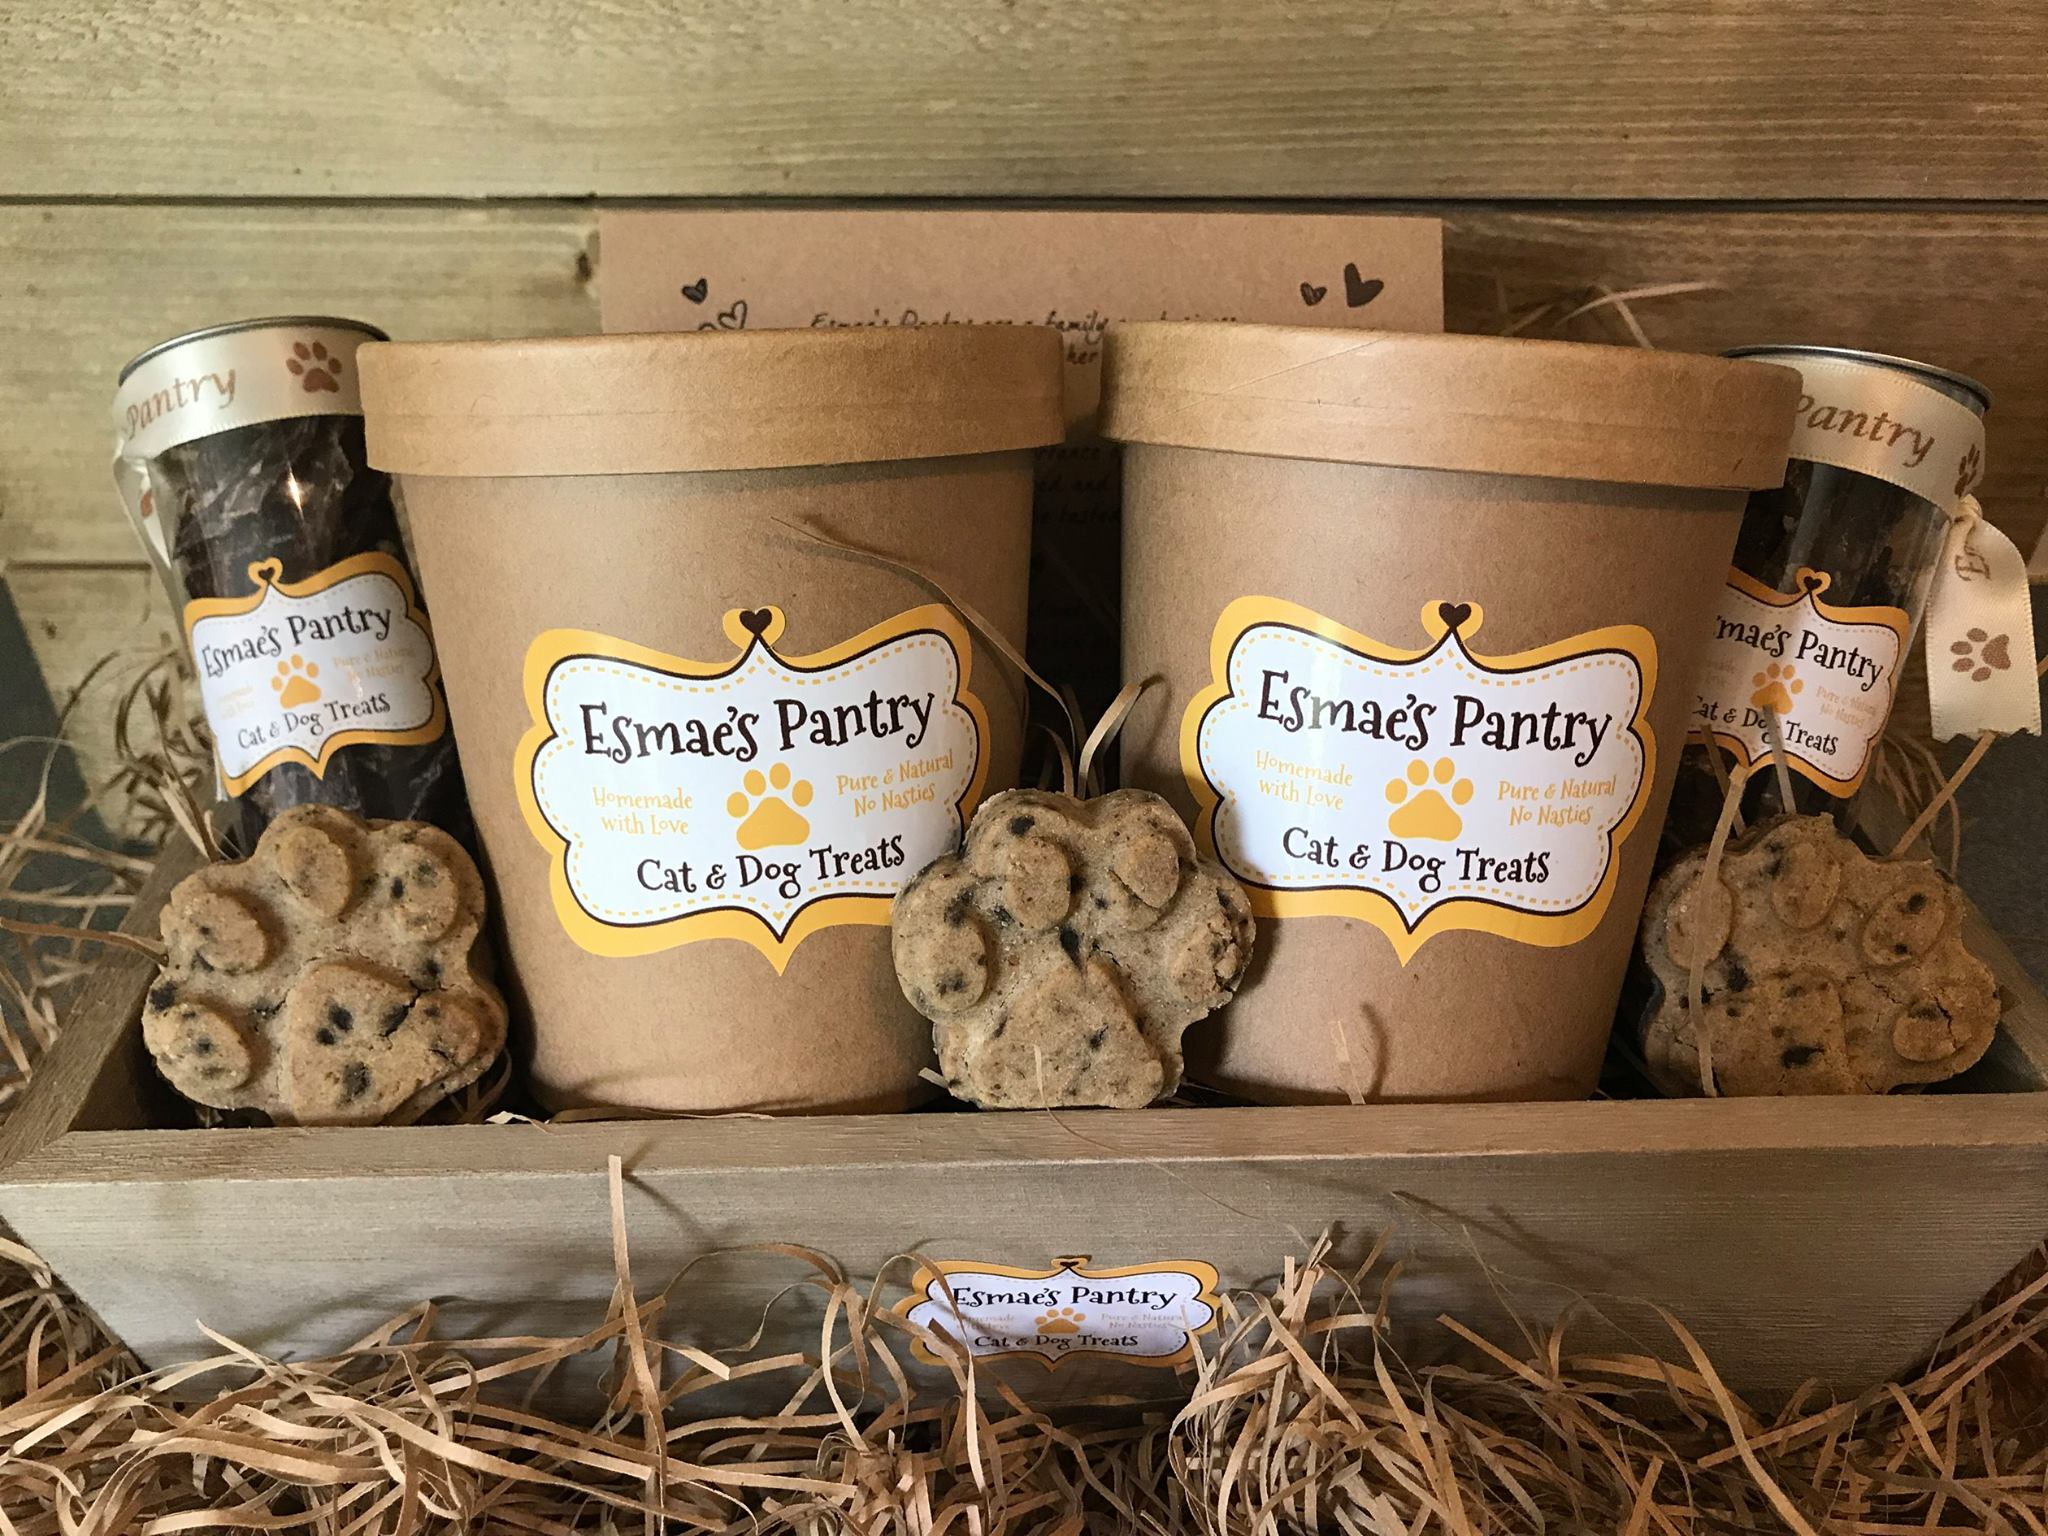 ESMAE'S PANTRY   Totally natural treats for cats and dogs - biscuits, jerky, chews and gifts   s https://esmaespantry.com/